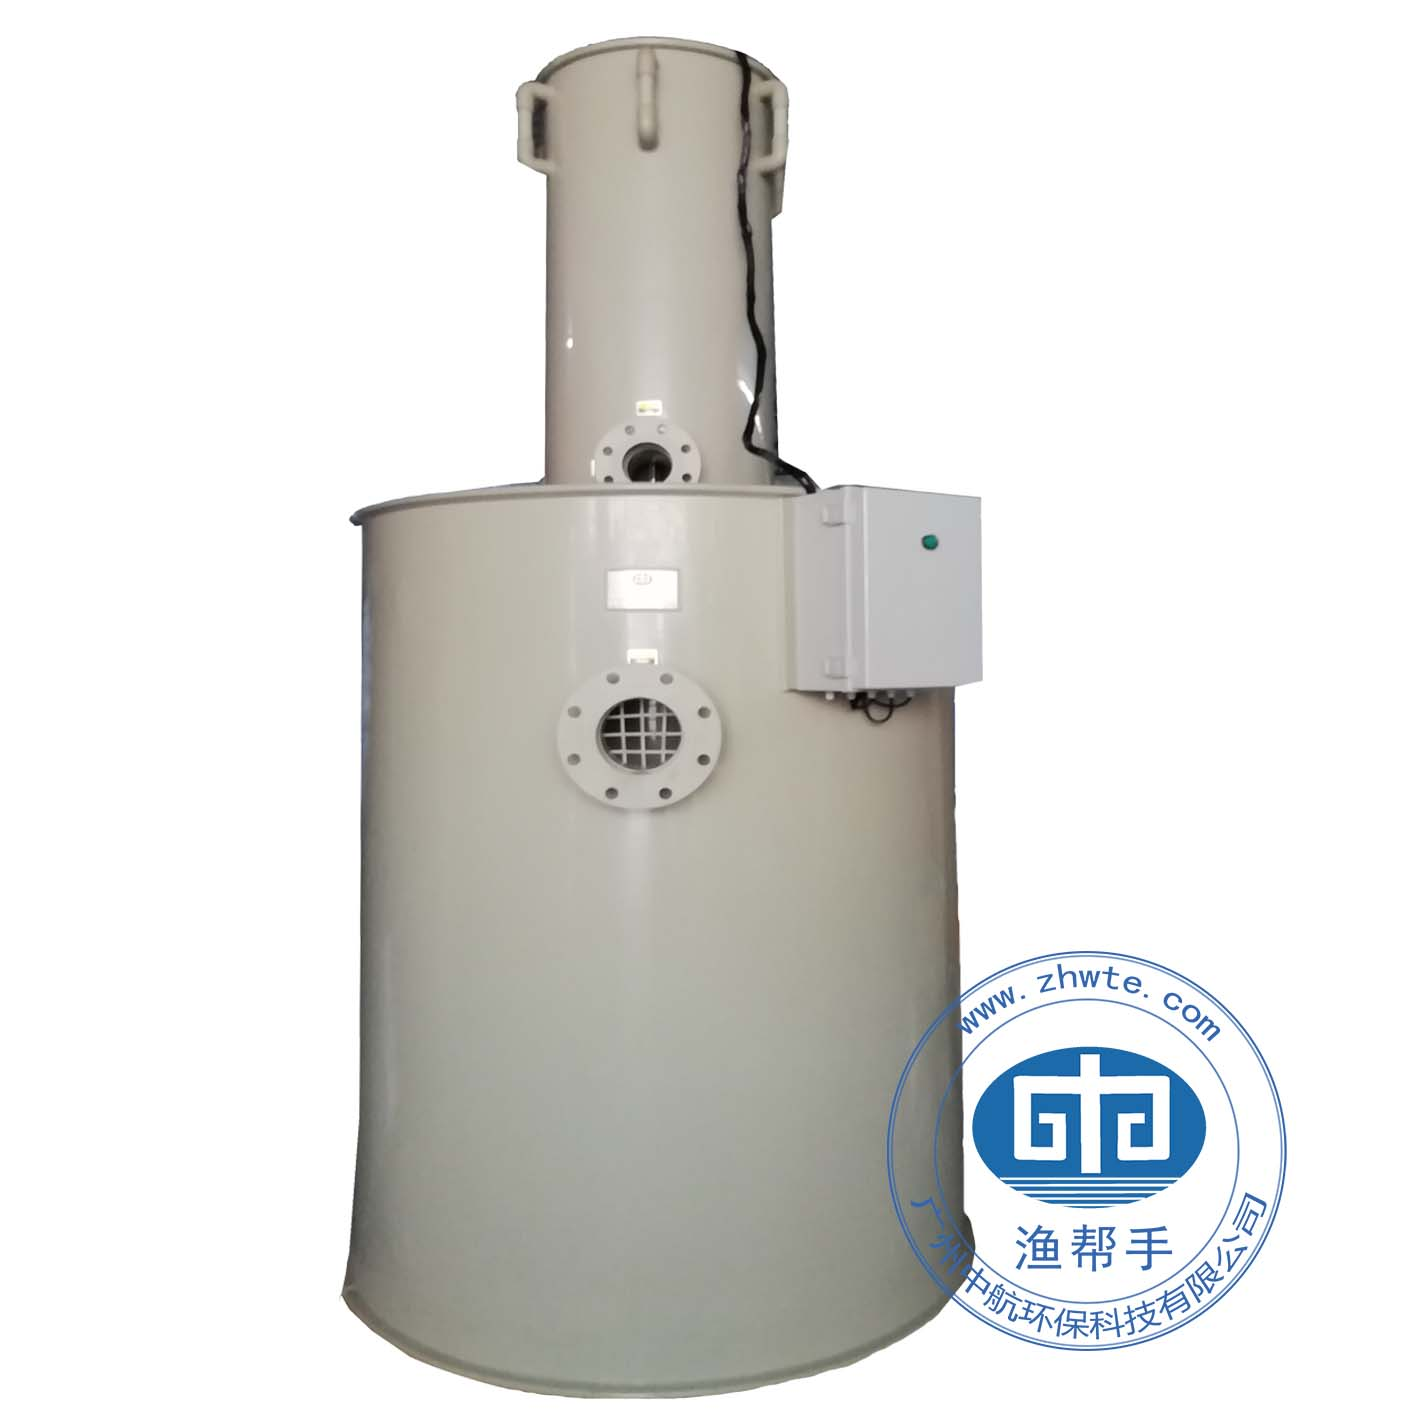 CO2 Degassing&UV Sterilizer Tower